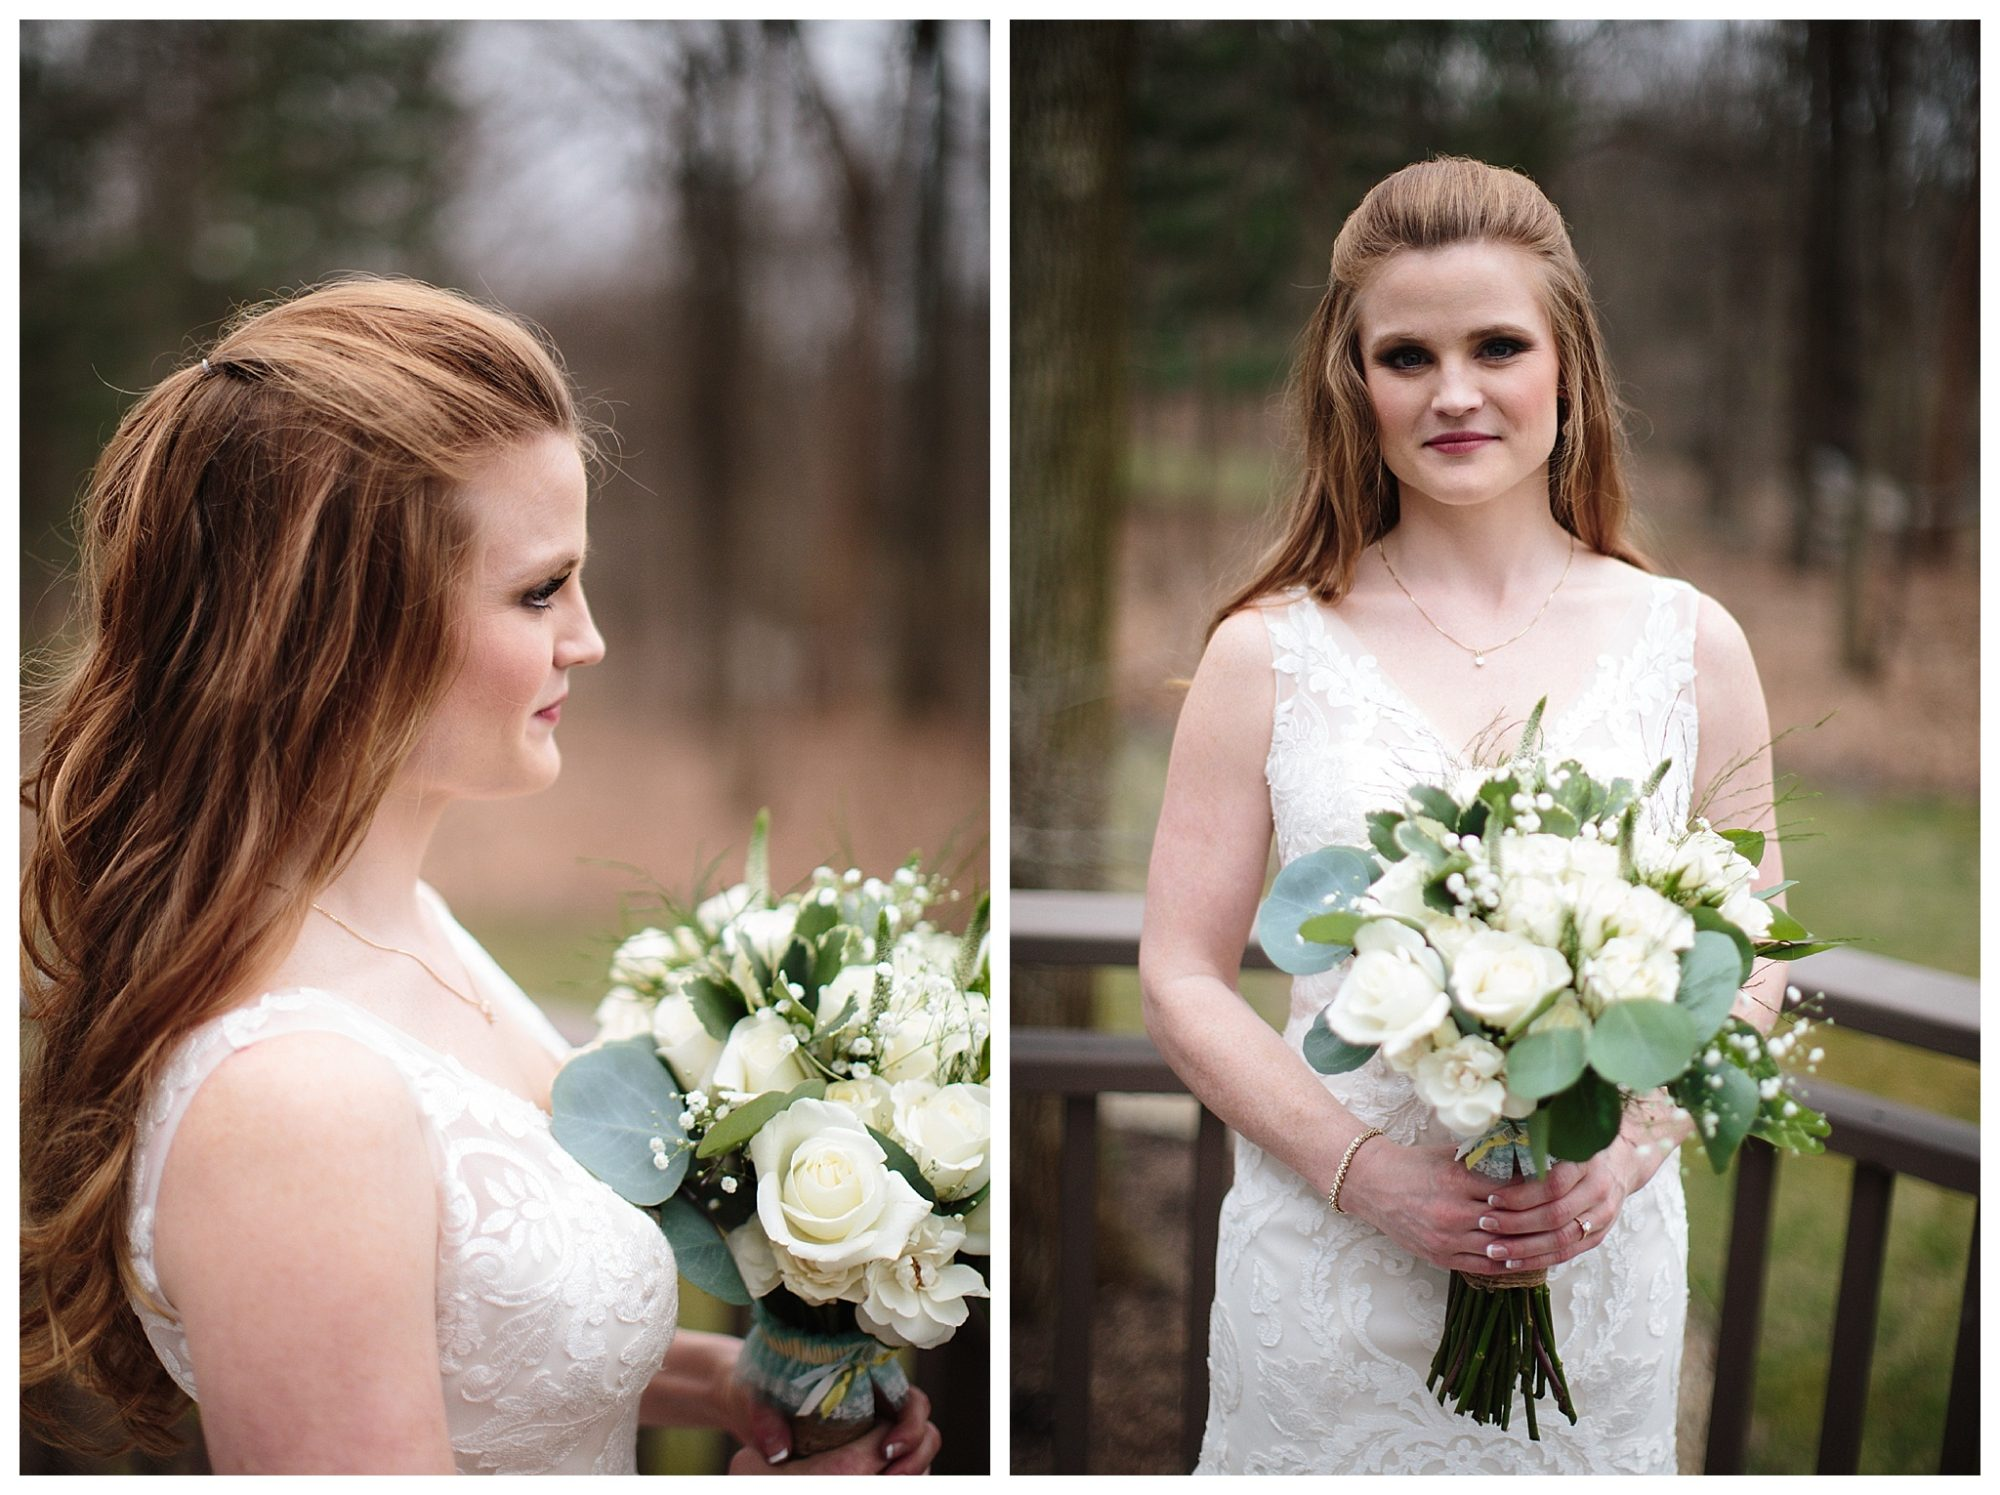 anna and pete – wedding in peoria, illinois – march 25, 2017